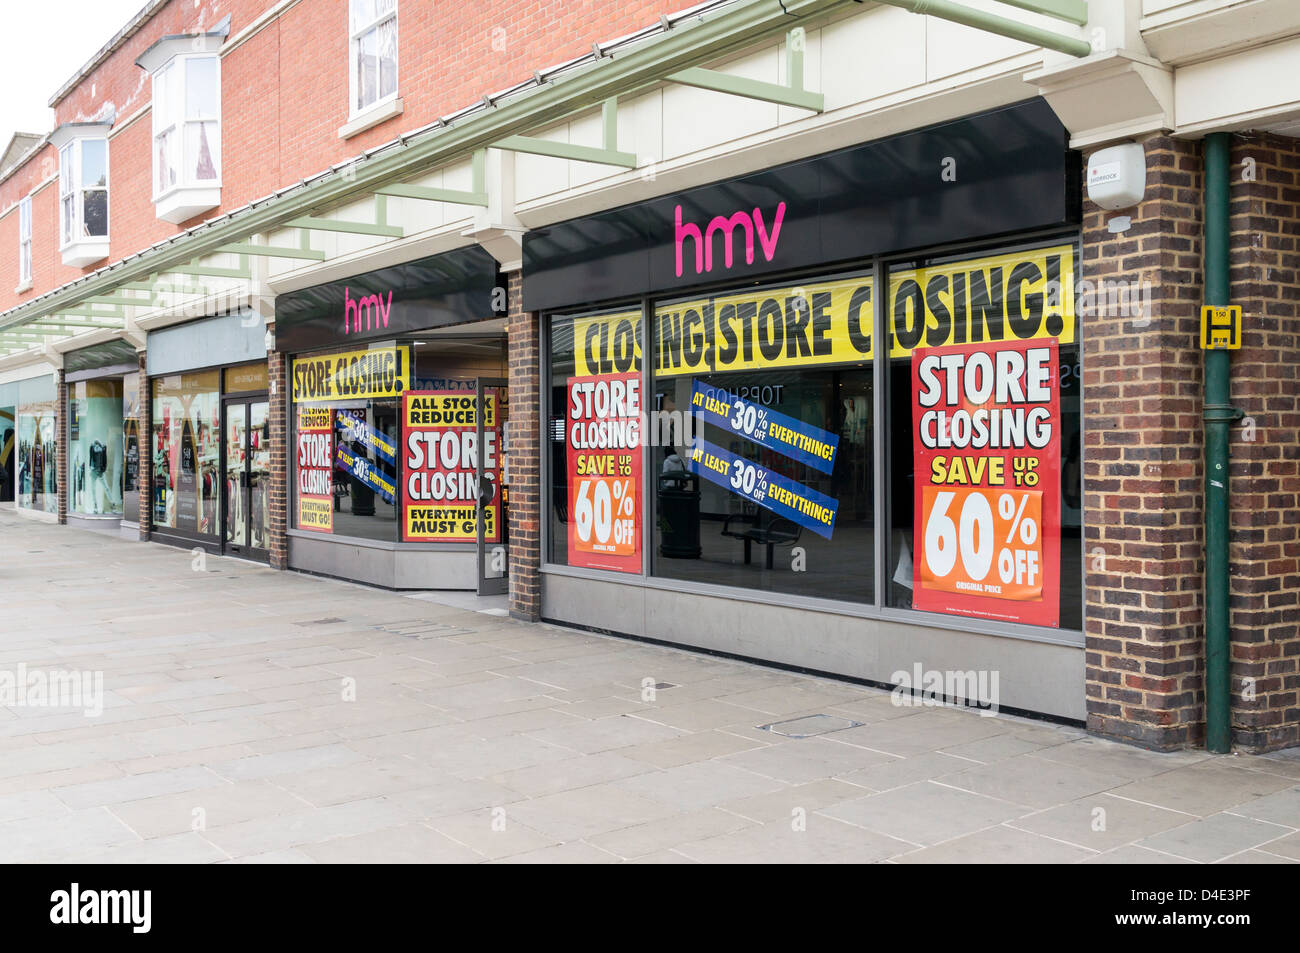 Branch of HMV music store closing down due to UK recession